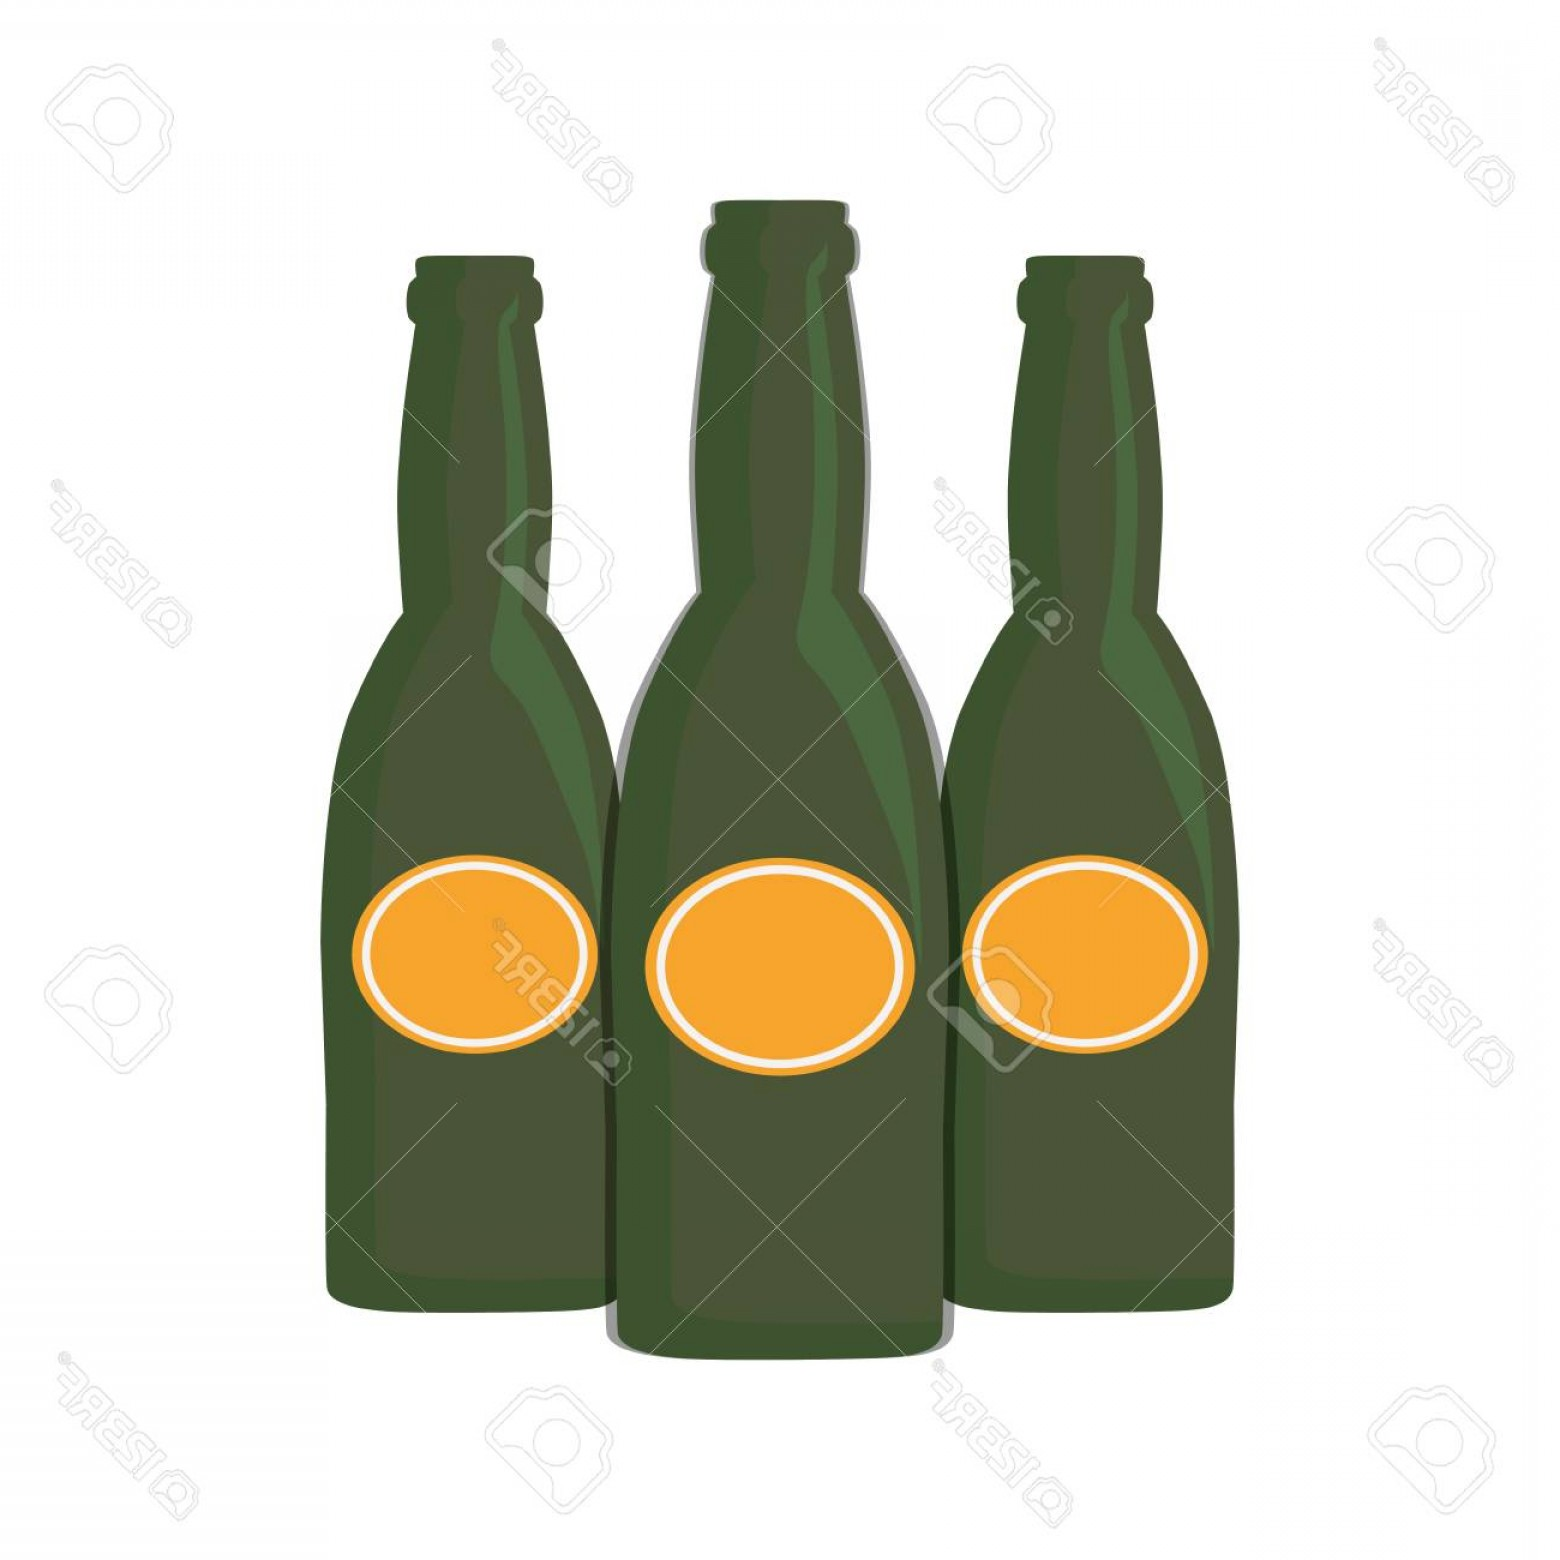 Alcohol Vector: Photostock Vector Three Beer Bottle Drink Beverage Alcohol Vector Illustration